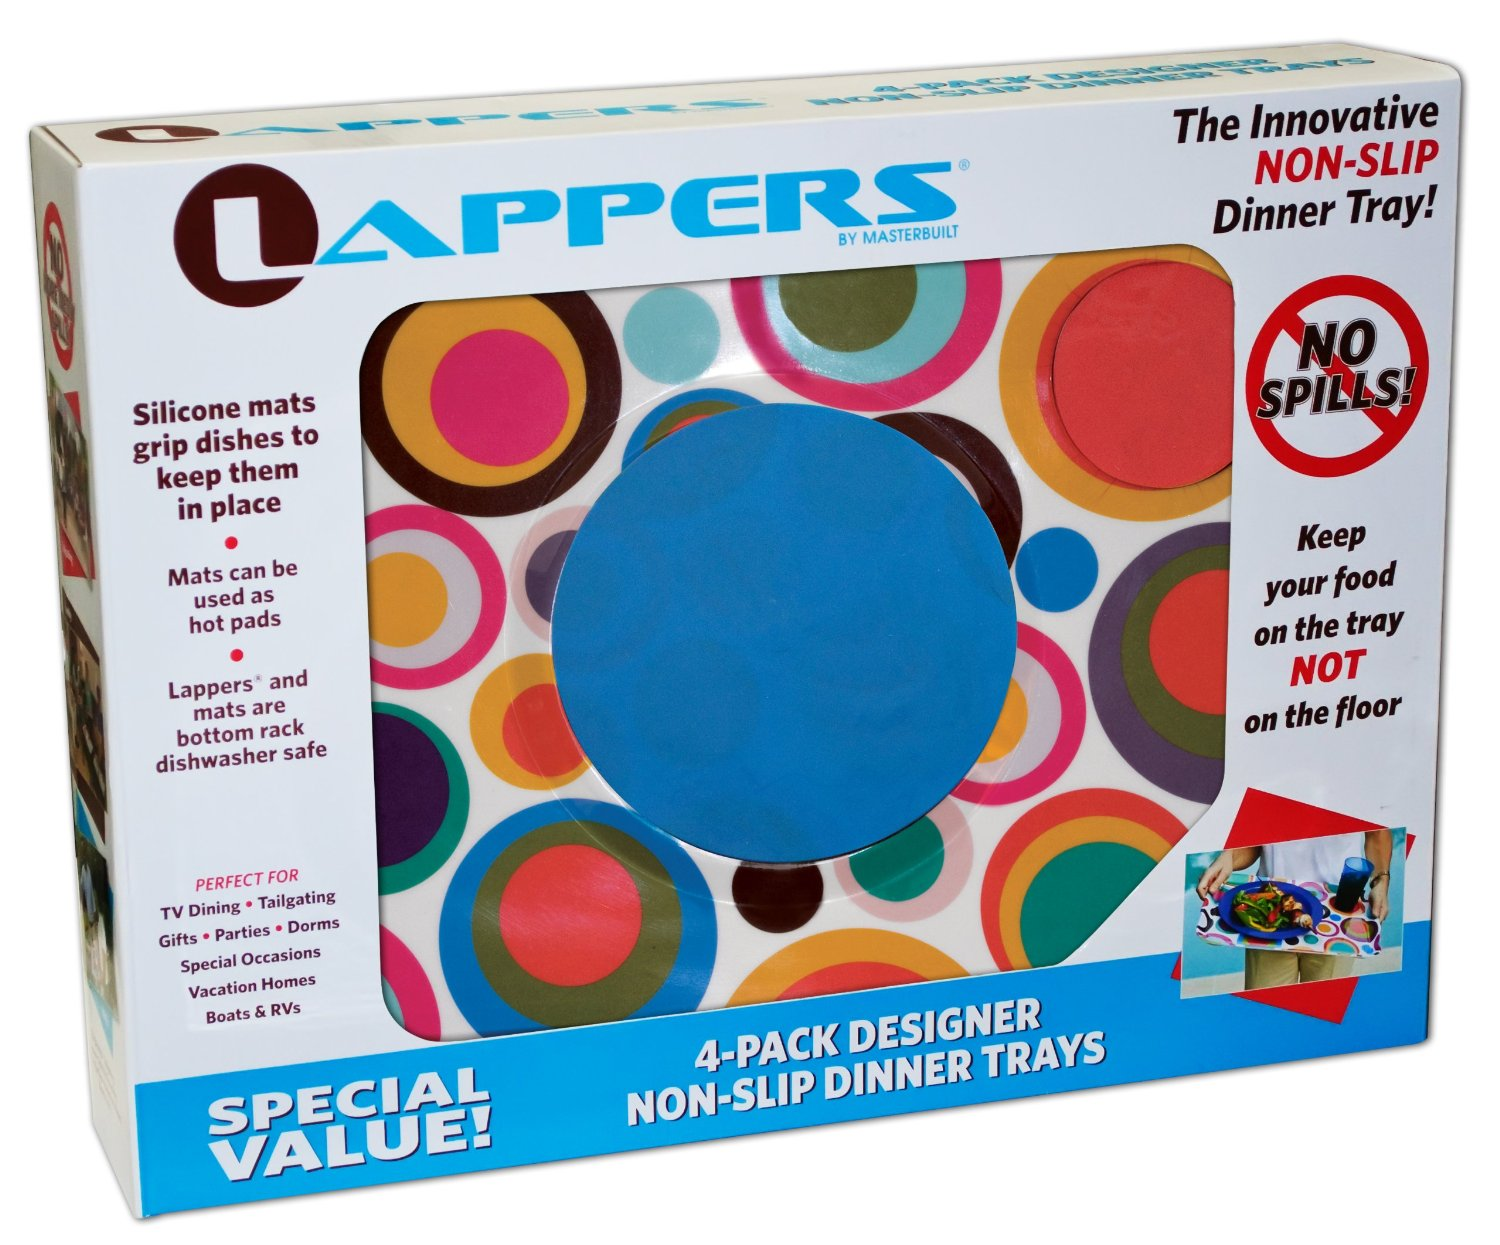 Lapper Trays with Circular Patterns Plus Non-Slip Plate and Cup Pads, 4 Trays Per Package